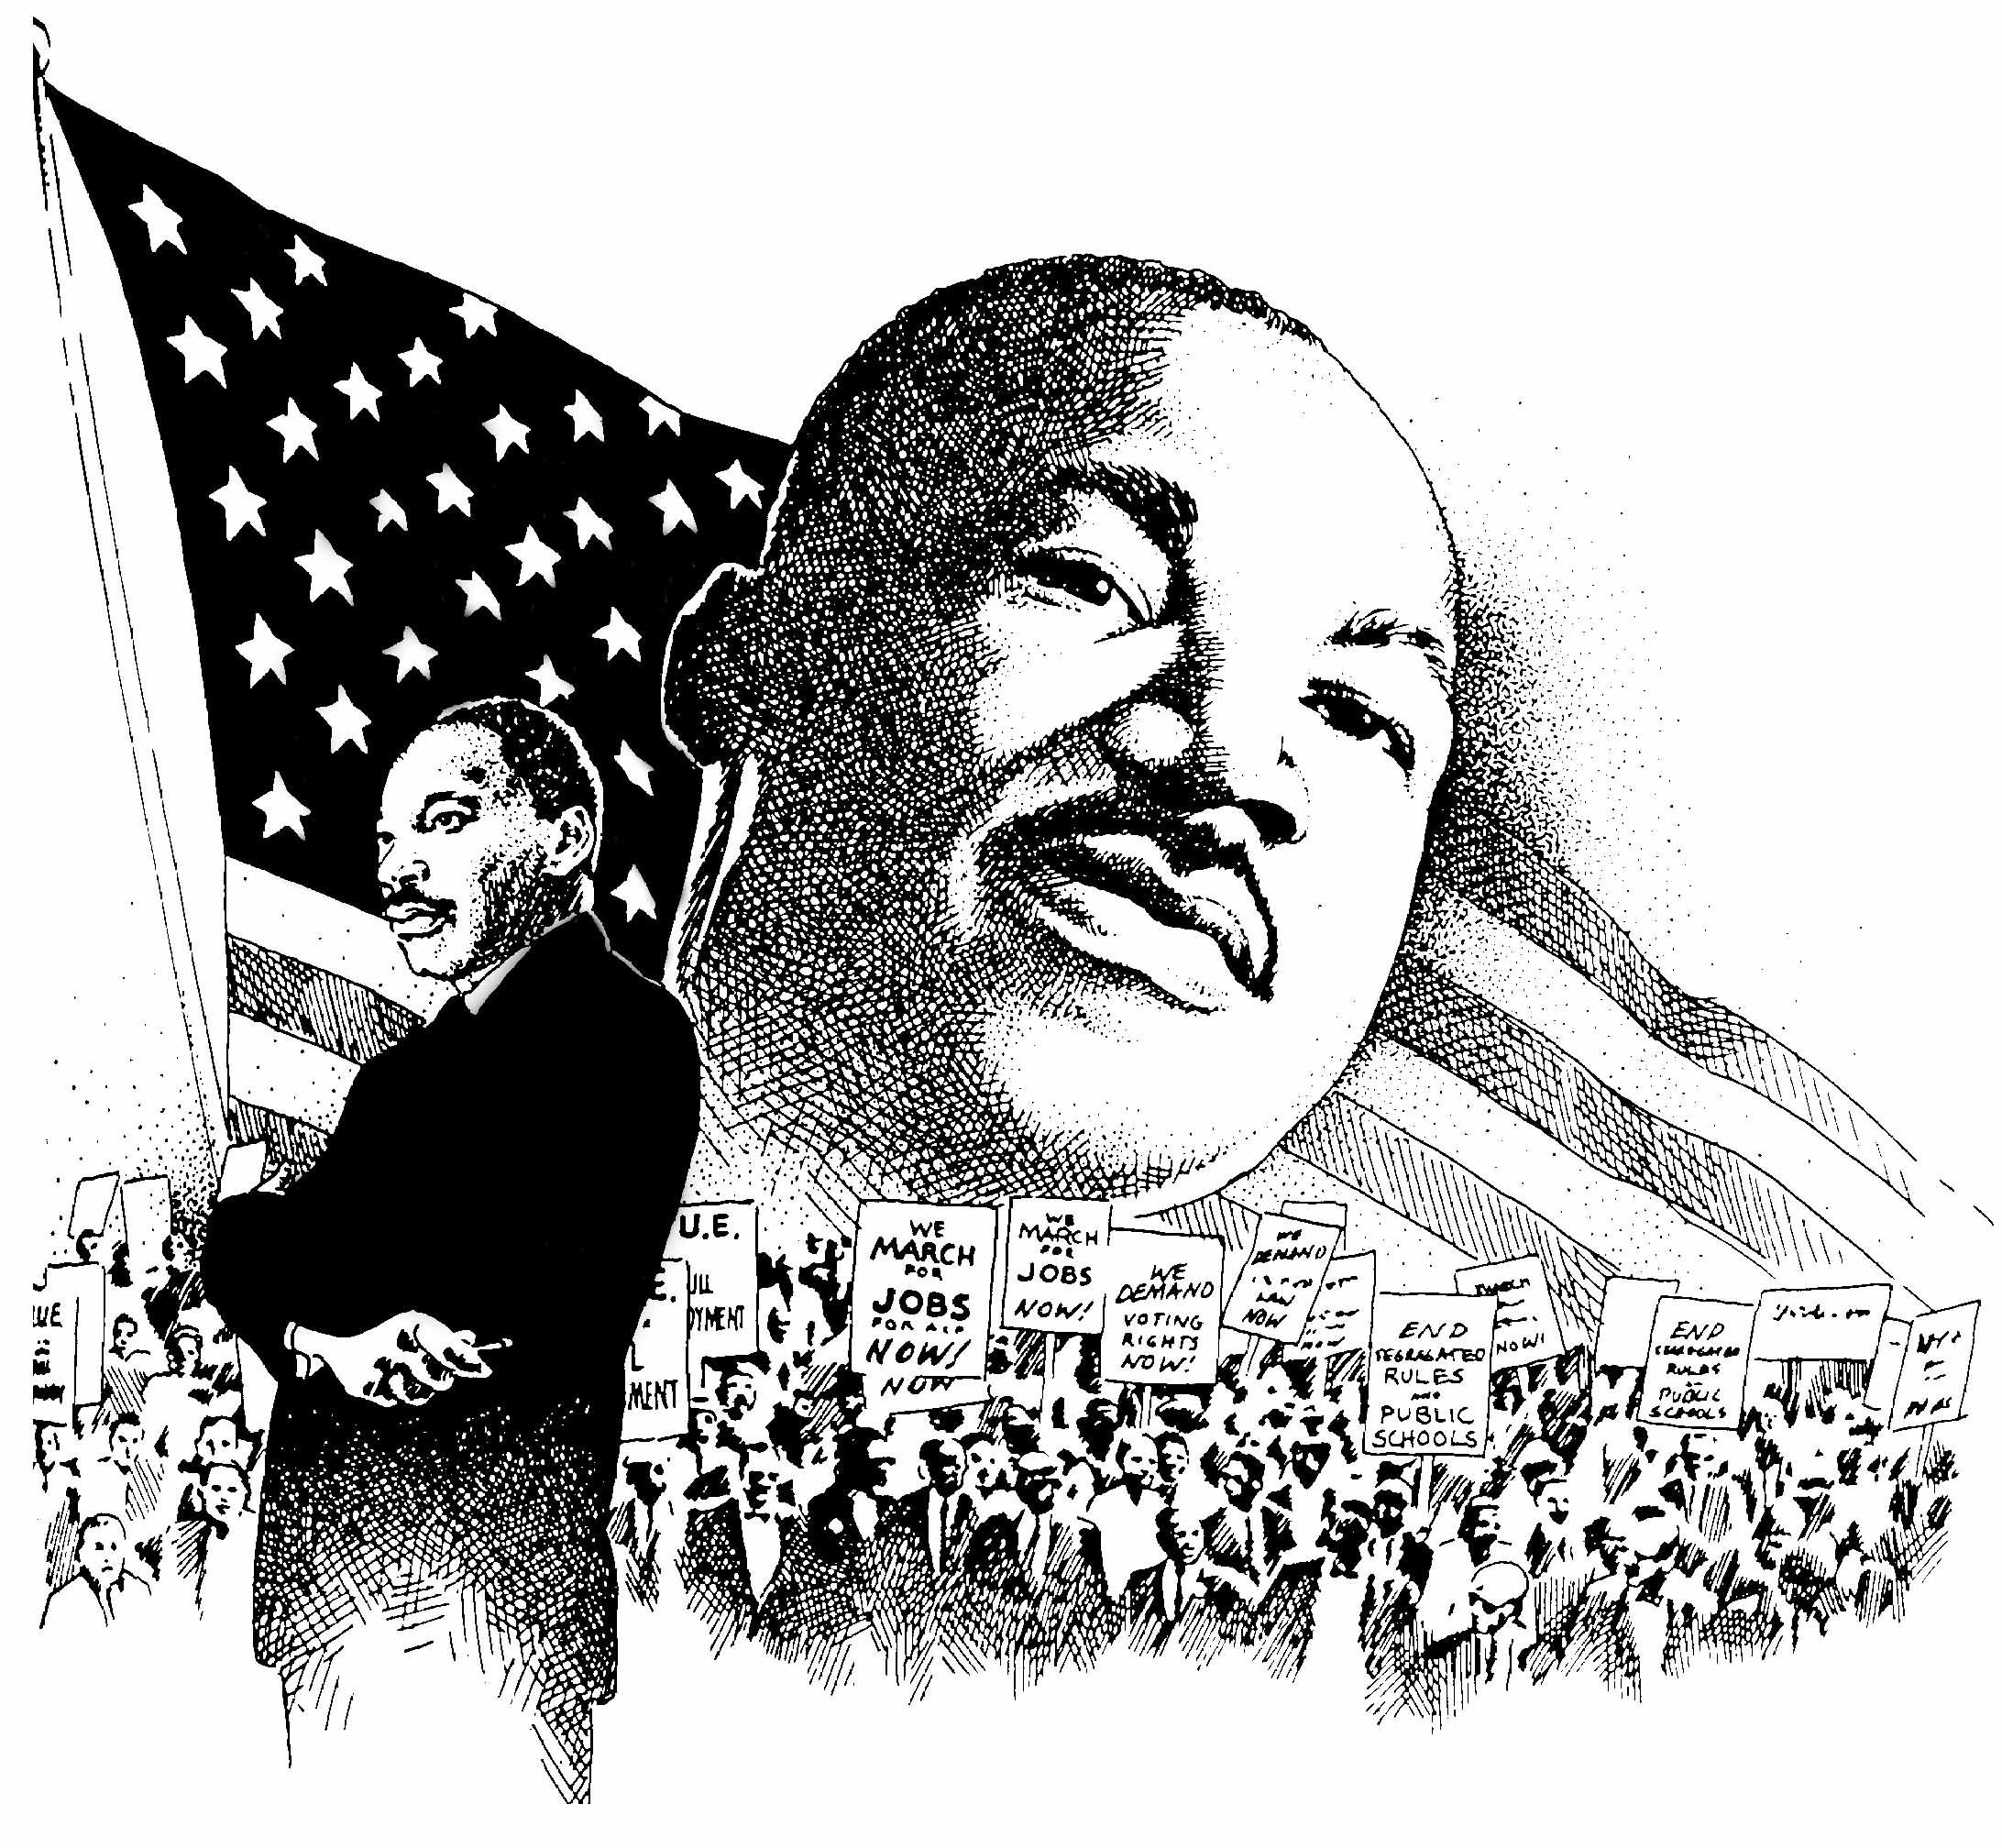 This honors Dr. King which would be great for the month of February ...